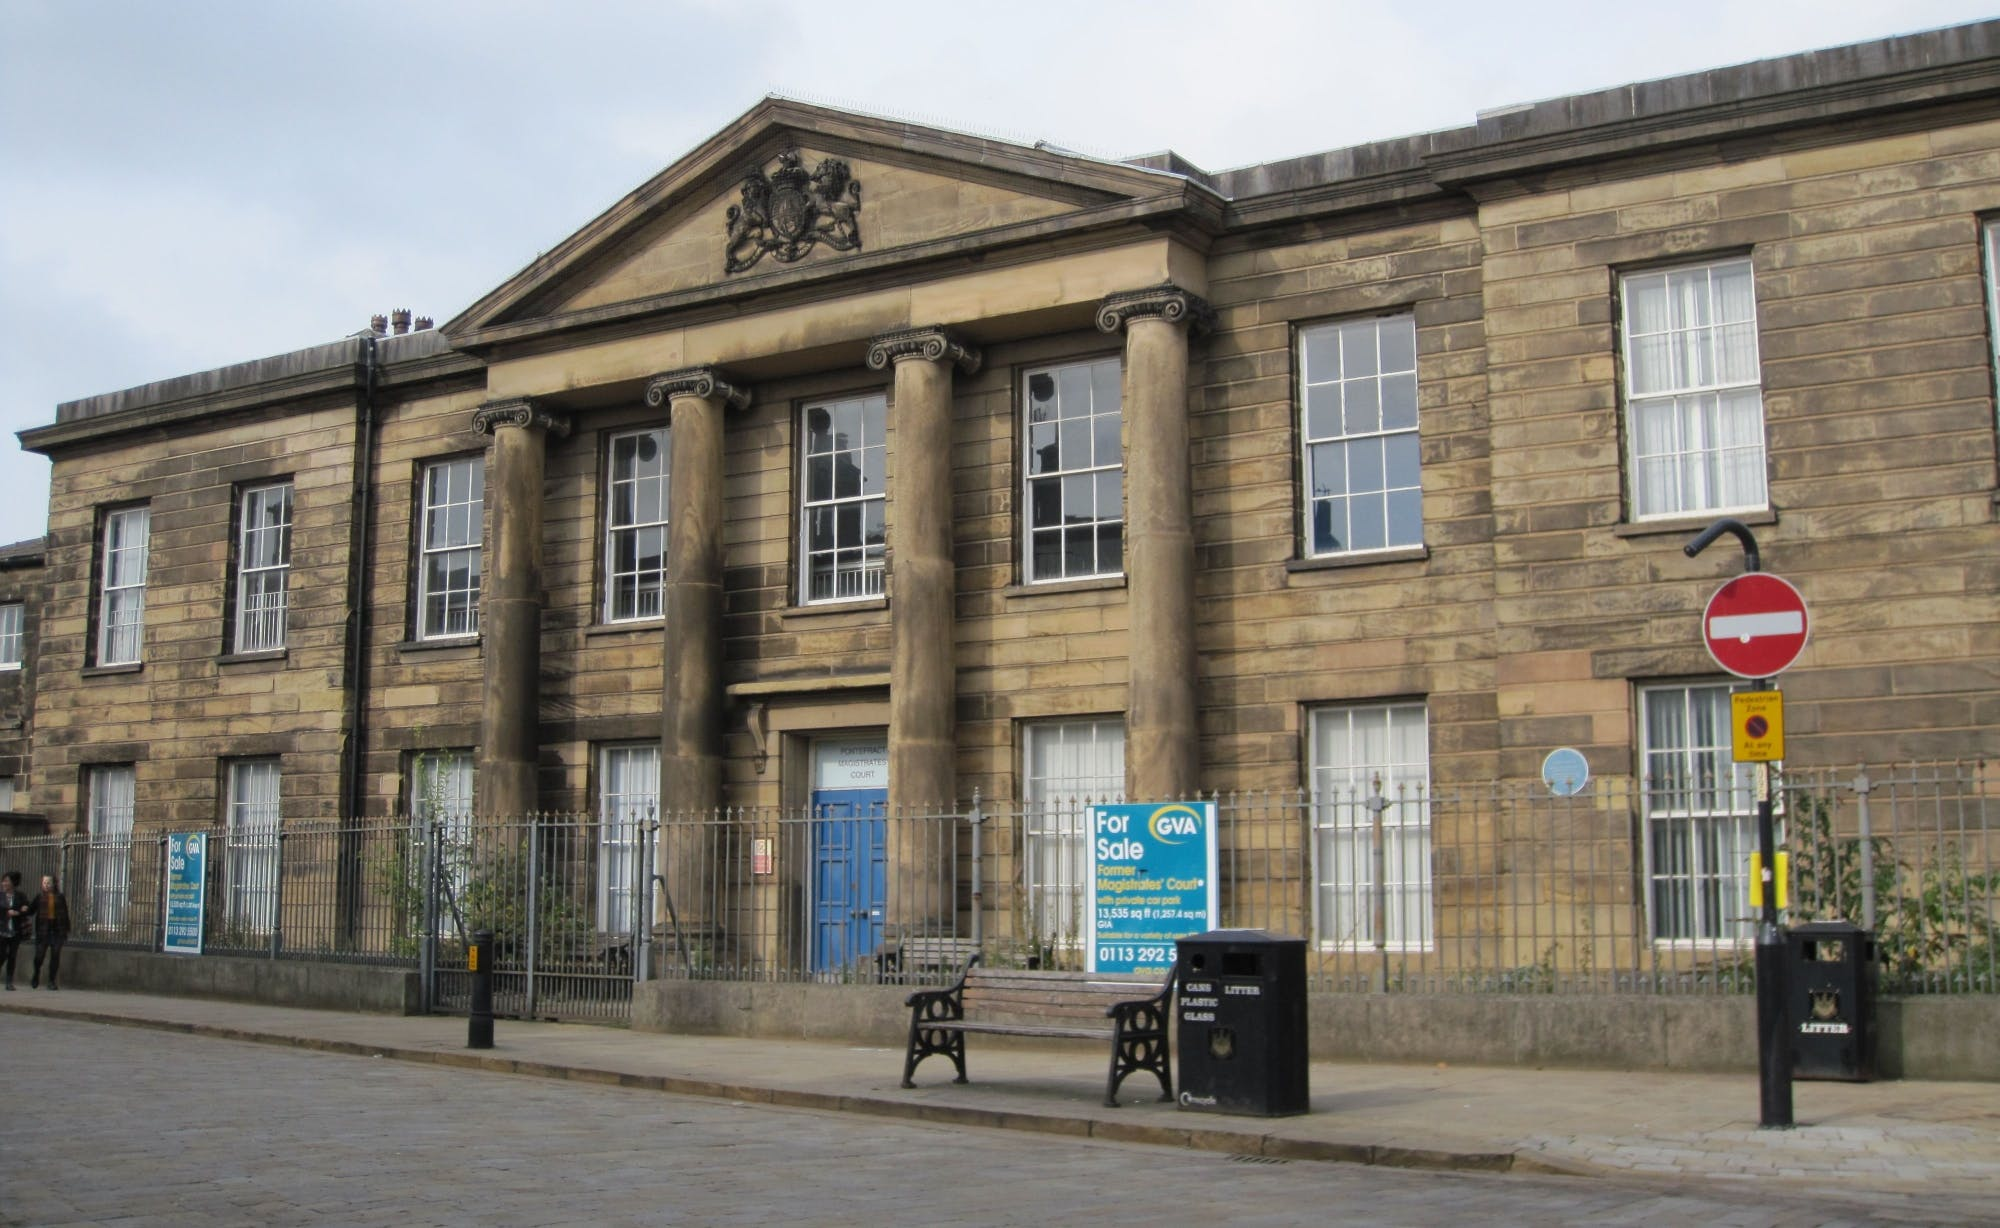 Sessions House at Pontefract